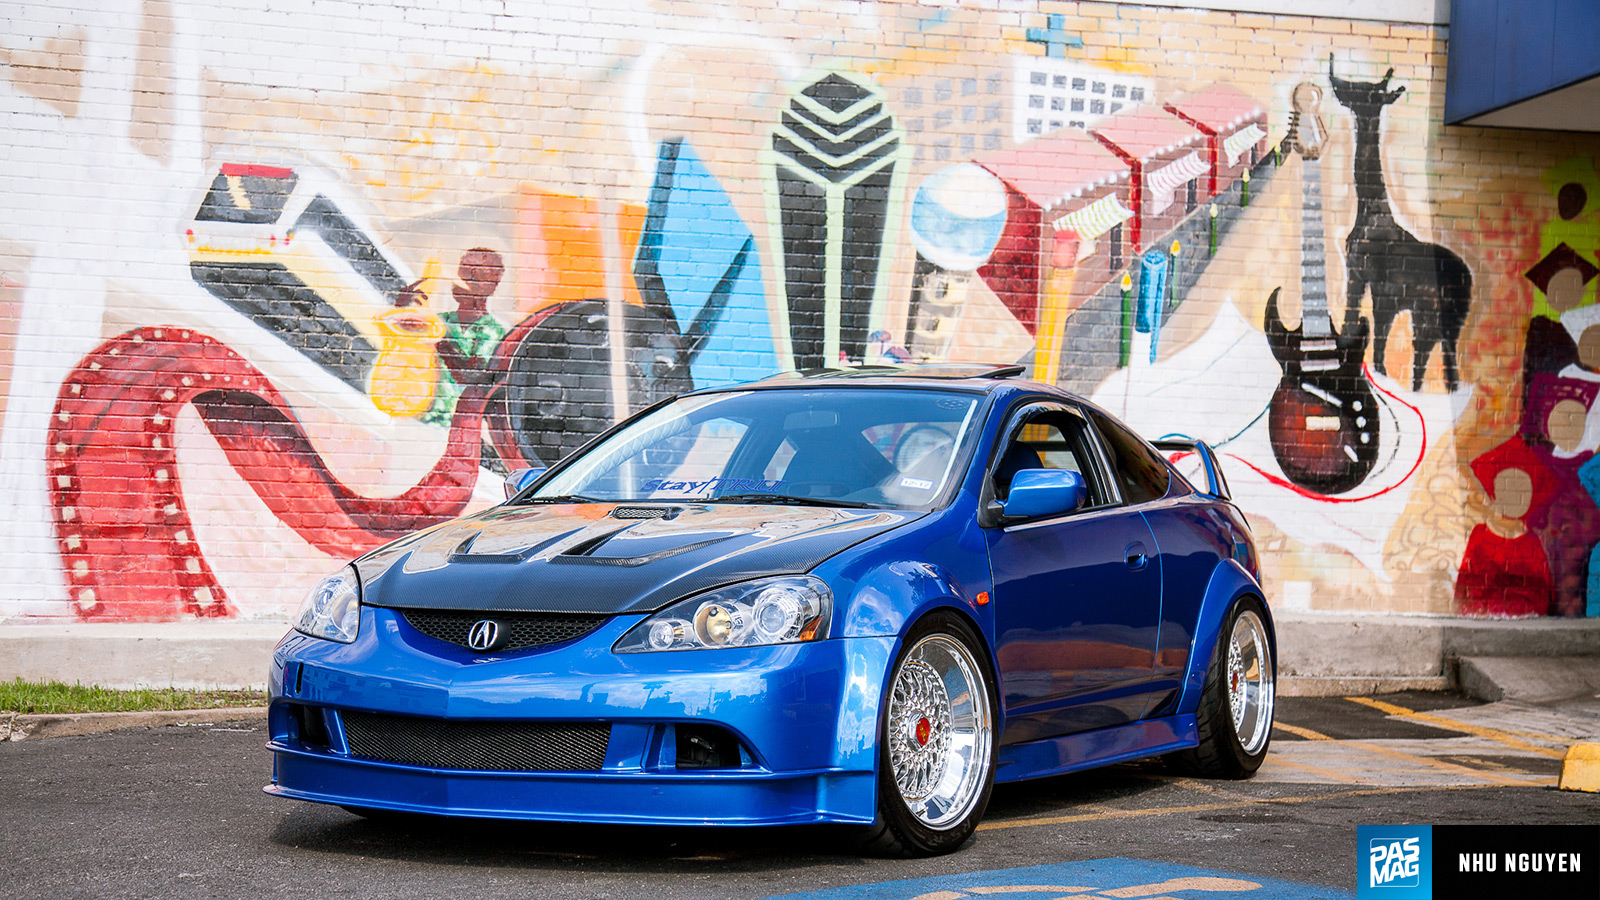 18 Luis Torres 2003 Acura RSX Type S PASMAG TBGLIVE